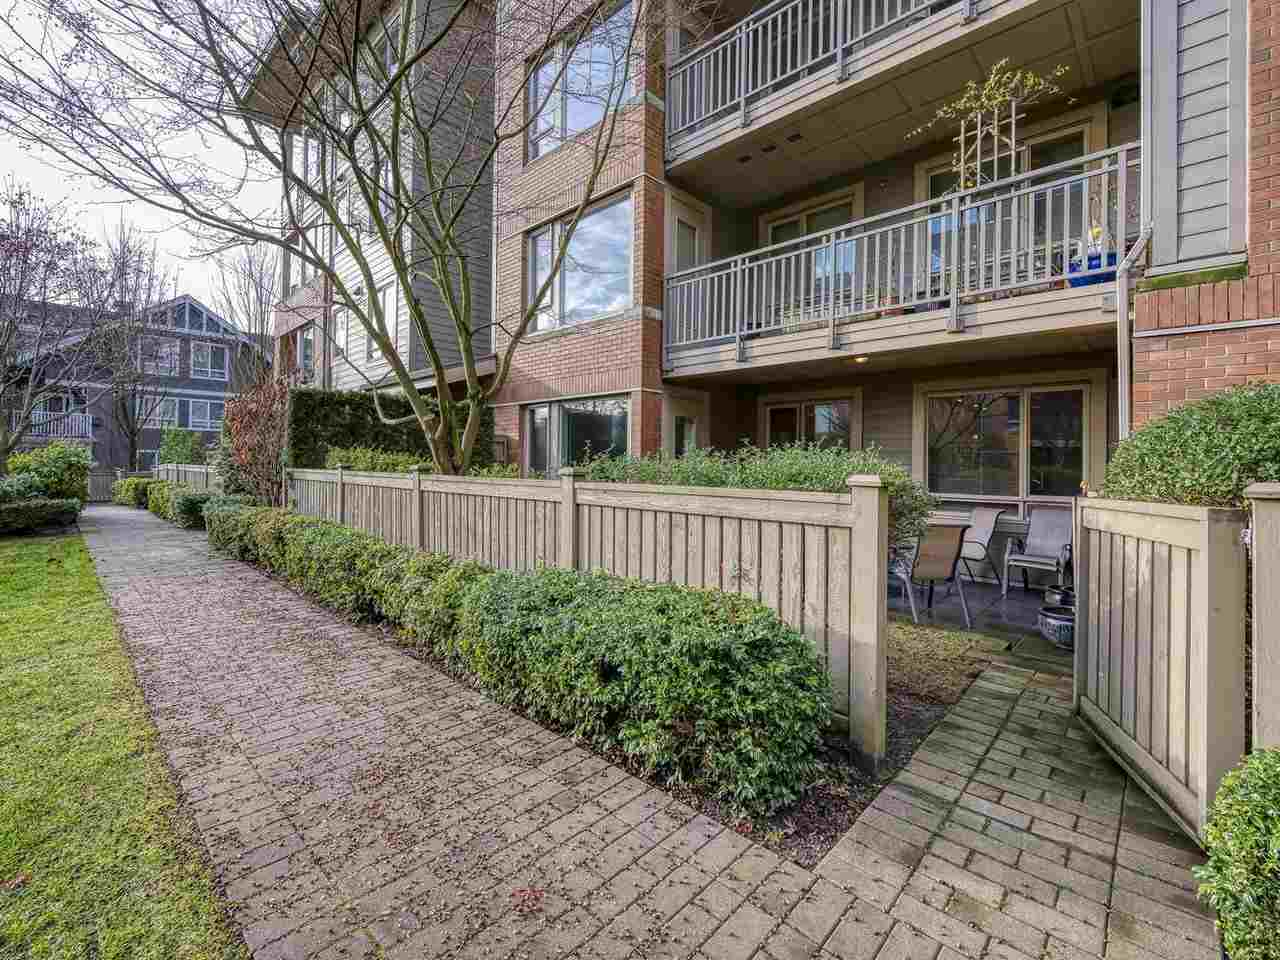 104 119 W 22ND STREET - Central Lonsdale Apartment/Condo for sale, 2 Bedrooms (R2528137) - #2